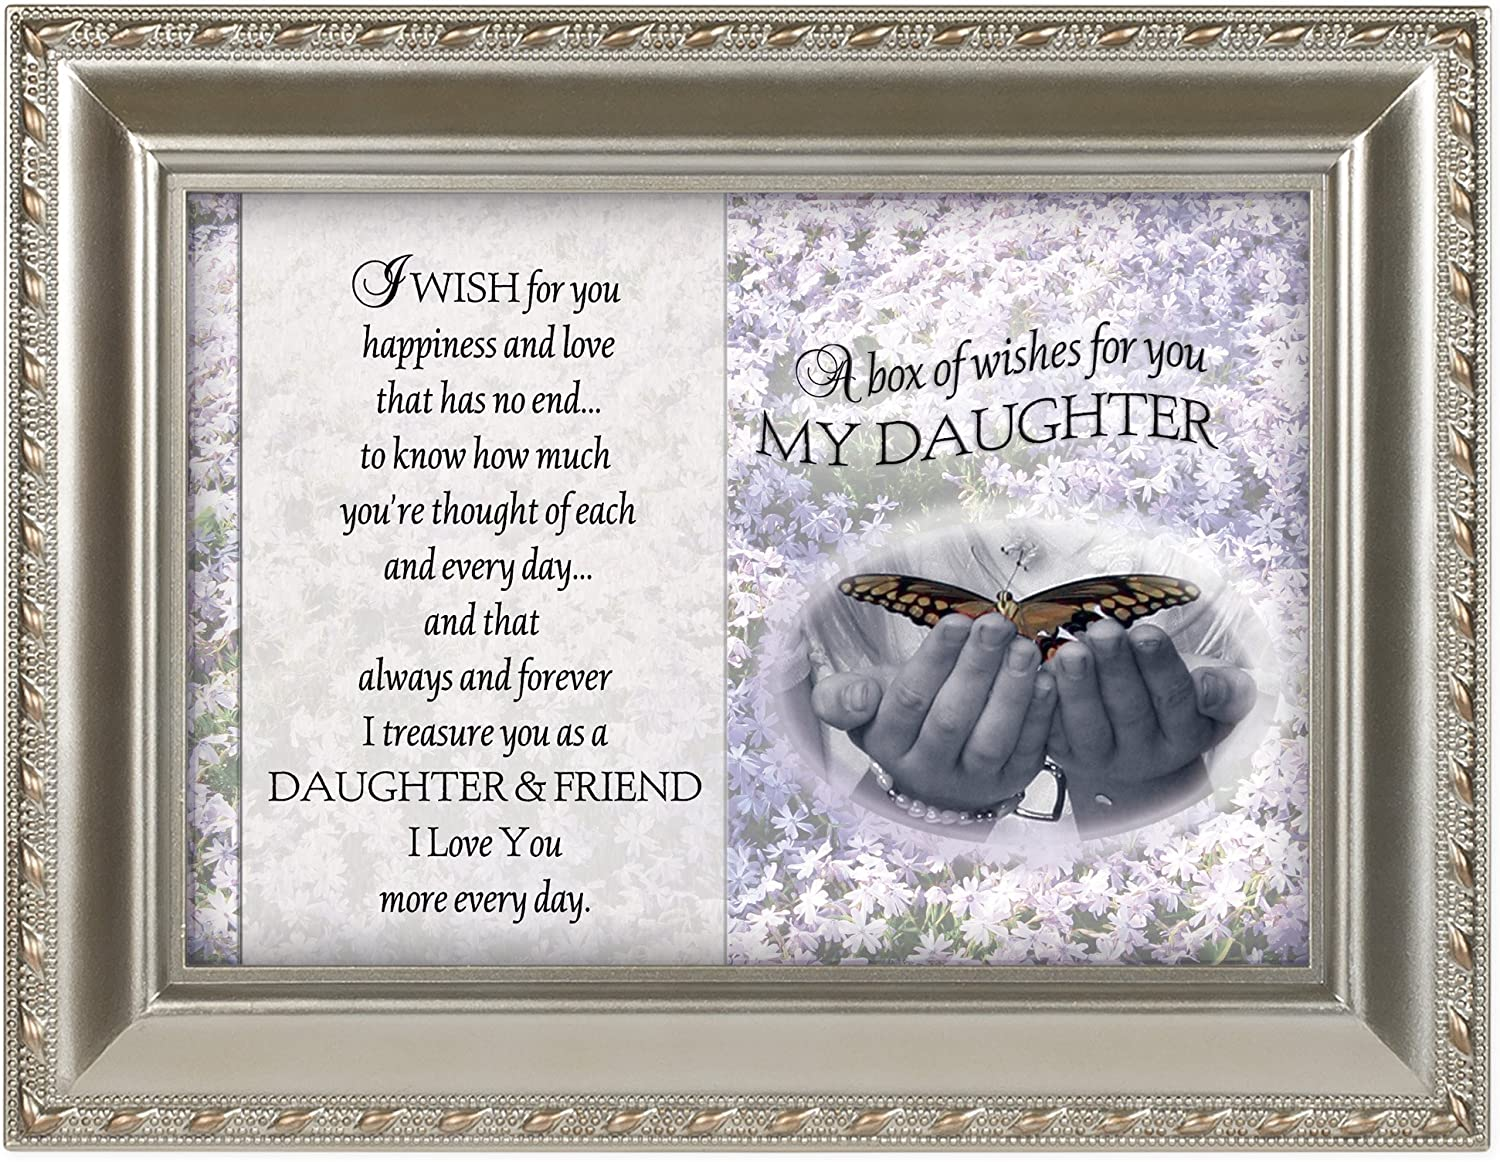 Cottage Garden Box of Wishes for You My Daughter Silvertone Rope Trim Easel Back Photo Frame